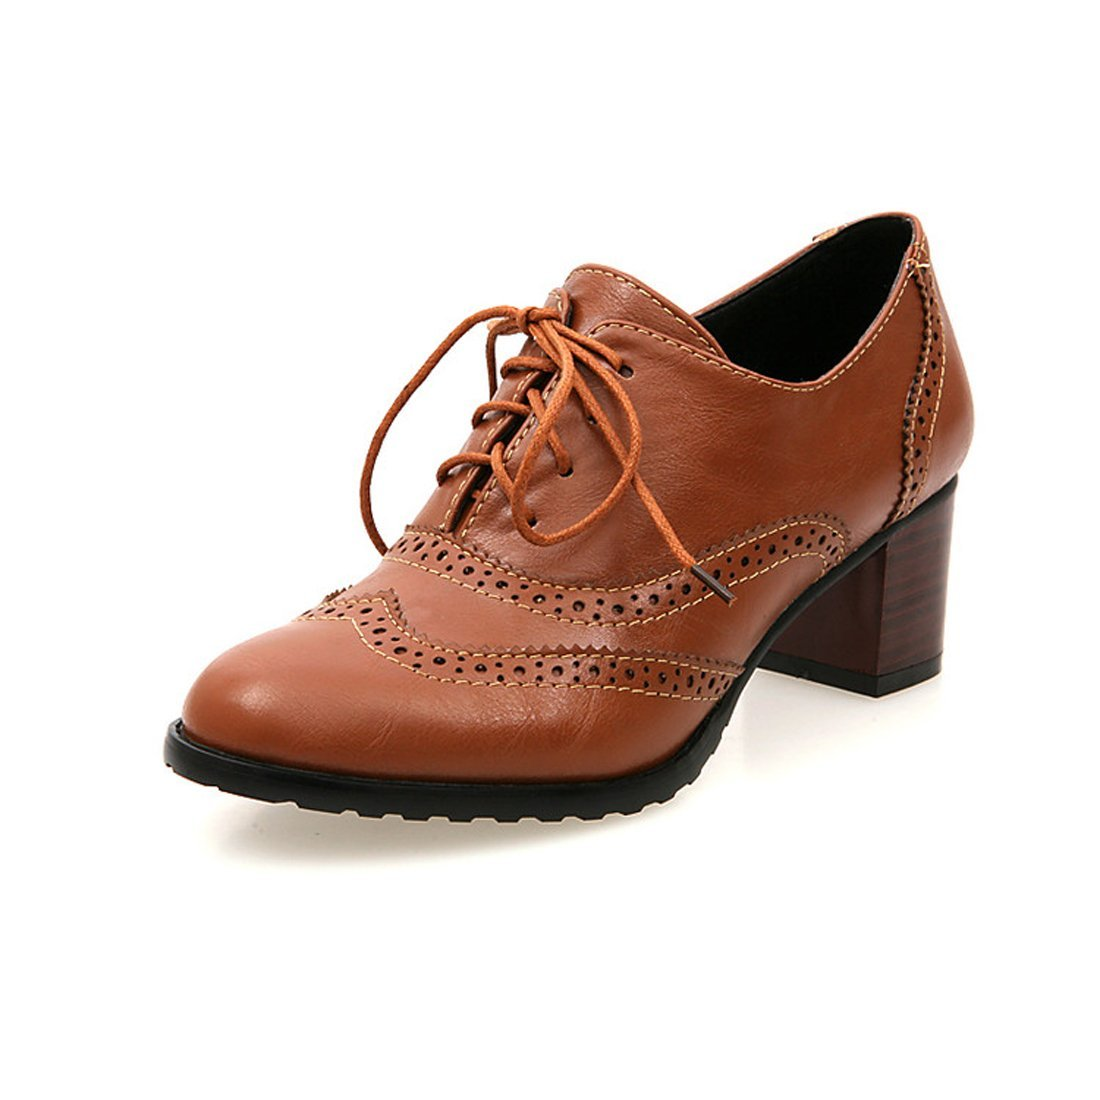 England Brogue Shoe Womens Lace-up Mid Heel Wingtip Oxfords Vintage PU Leather Shoes 3